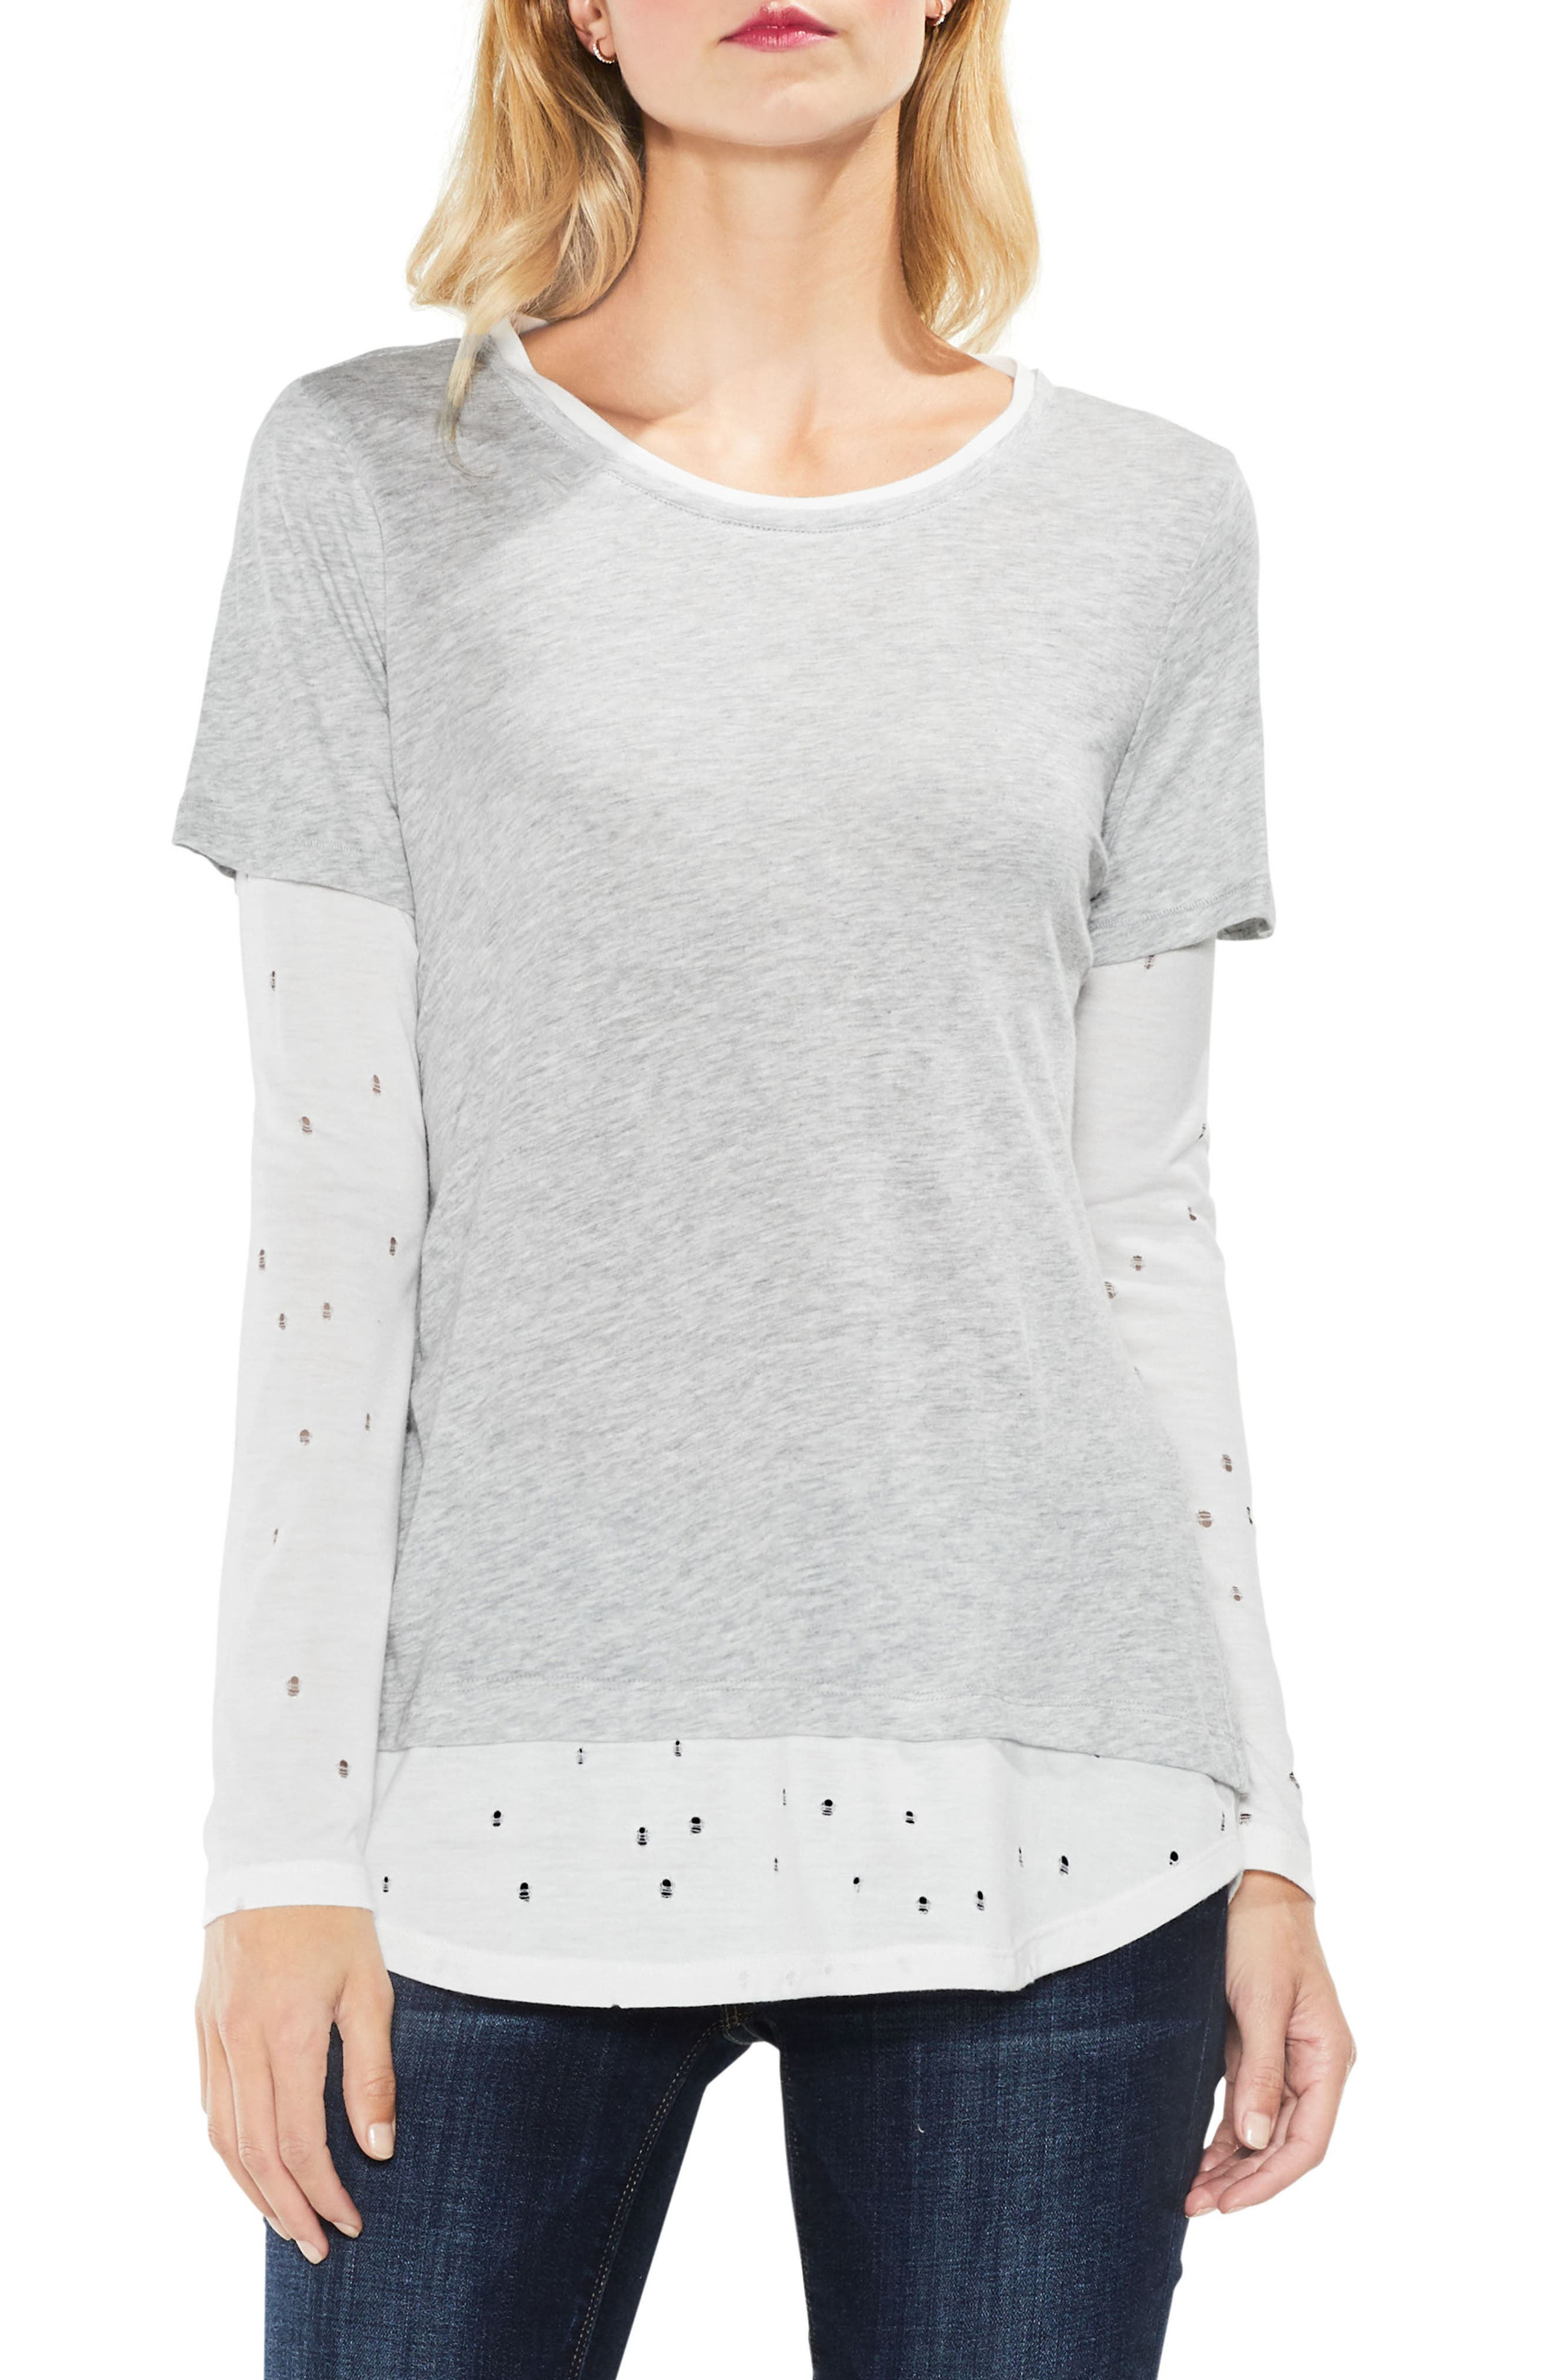 Alternate Image 1 Selected - Two by Vince Camuto Distressed Mix Media Top